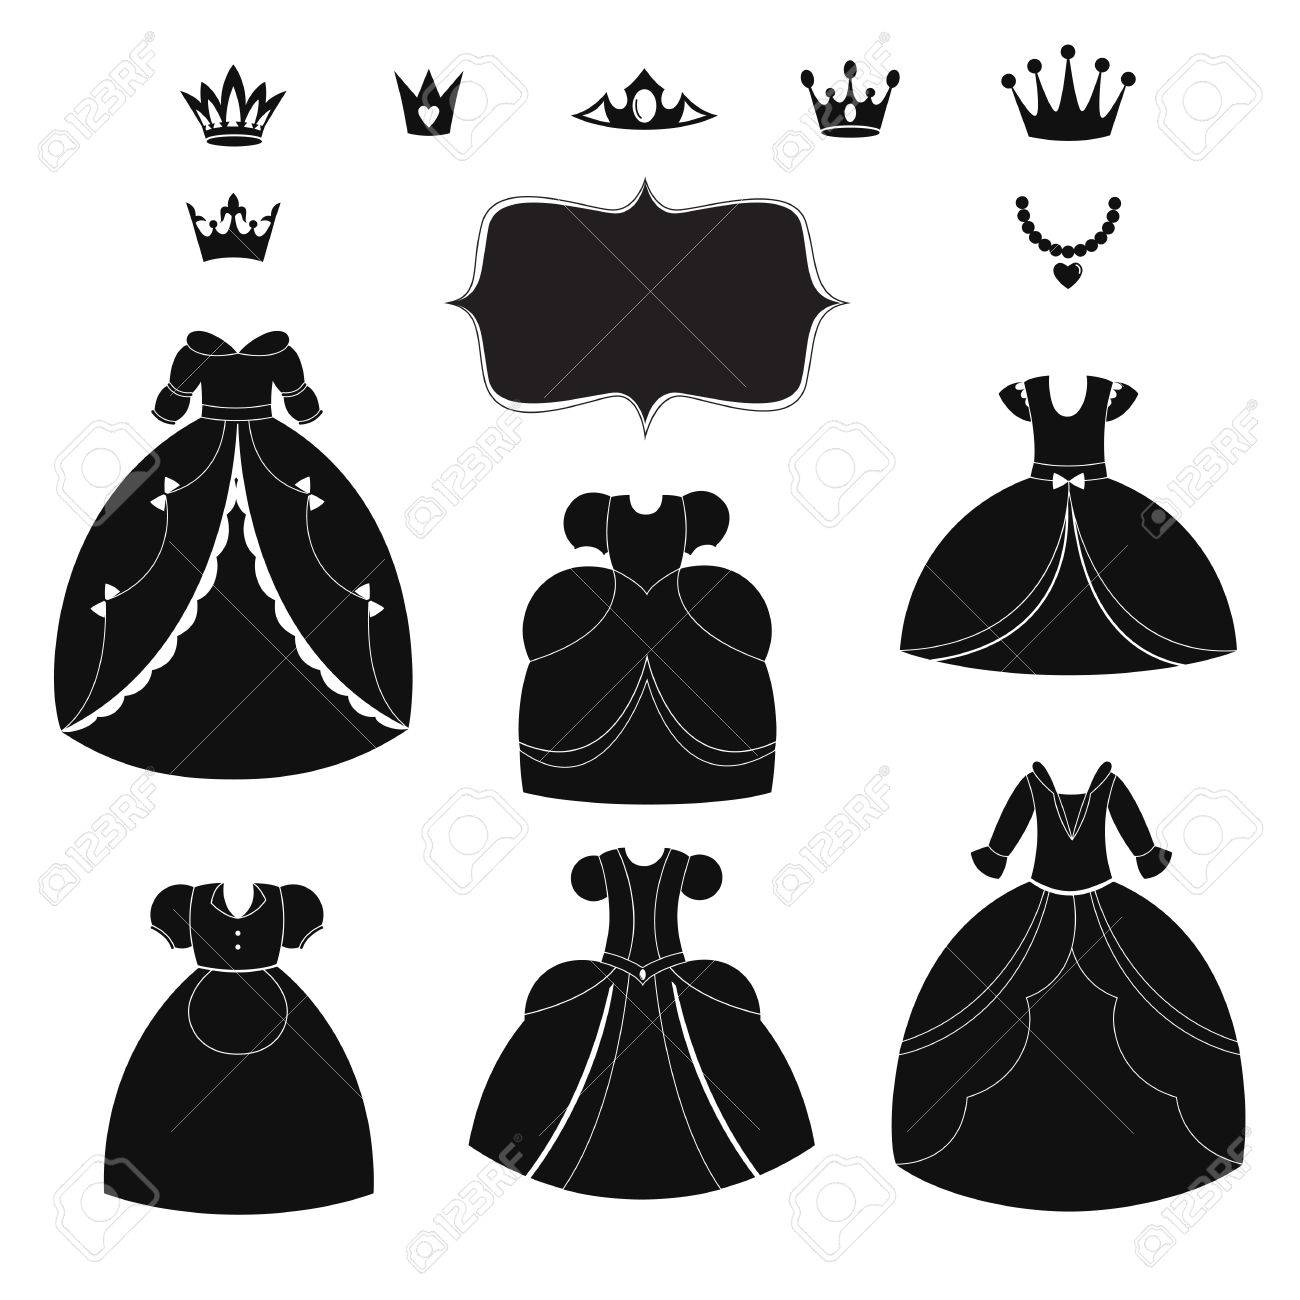 Black dress cartoon - Princess Dress Silhouettes Set Cartoon Black And White Wearable Items Stock Vector 56720706